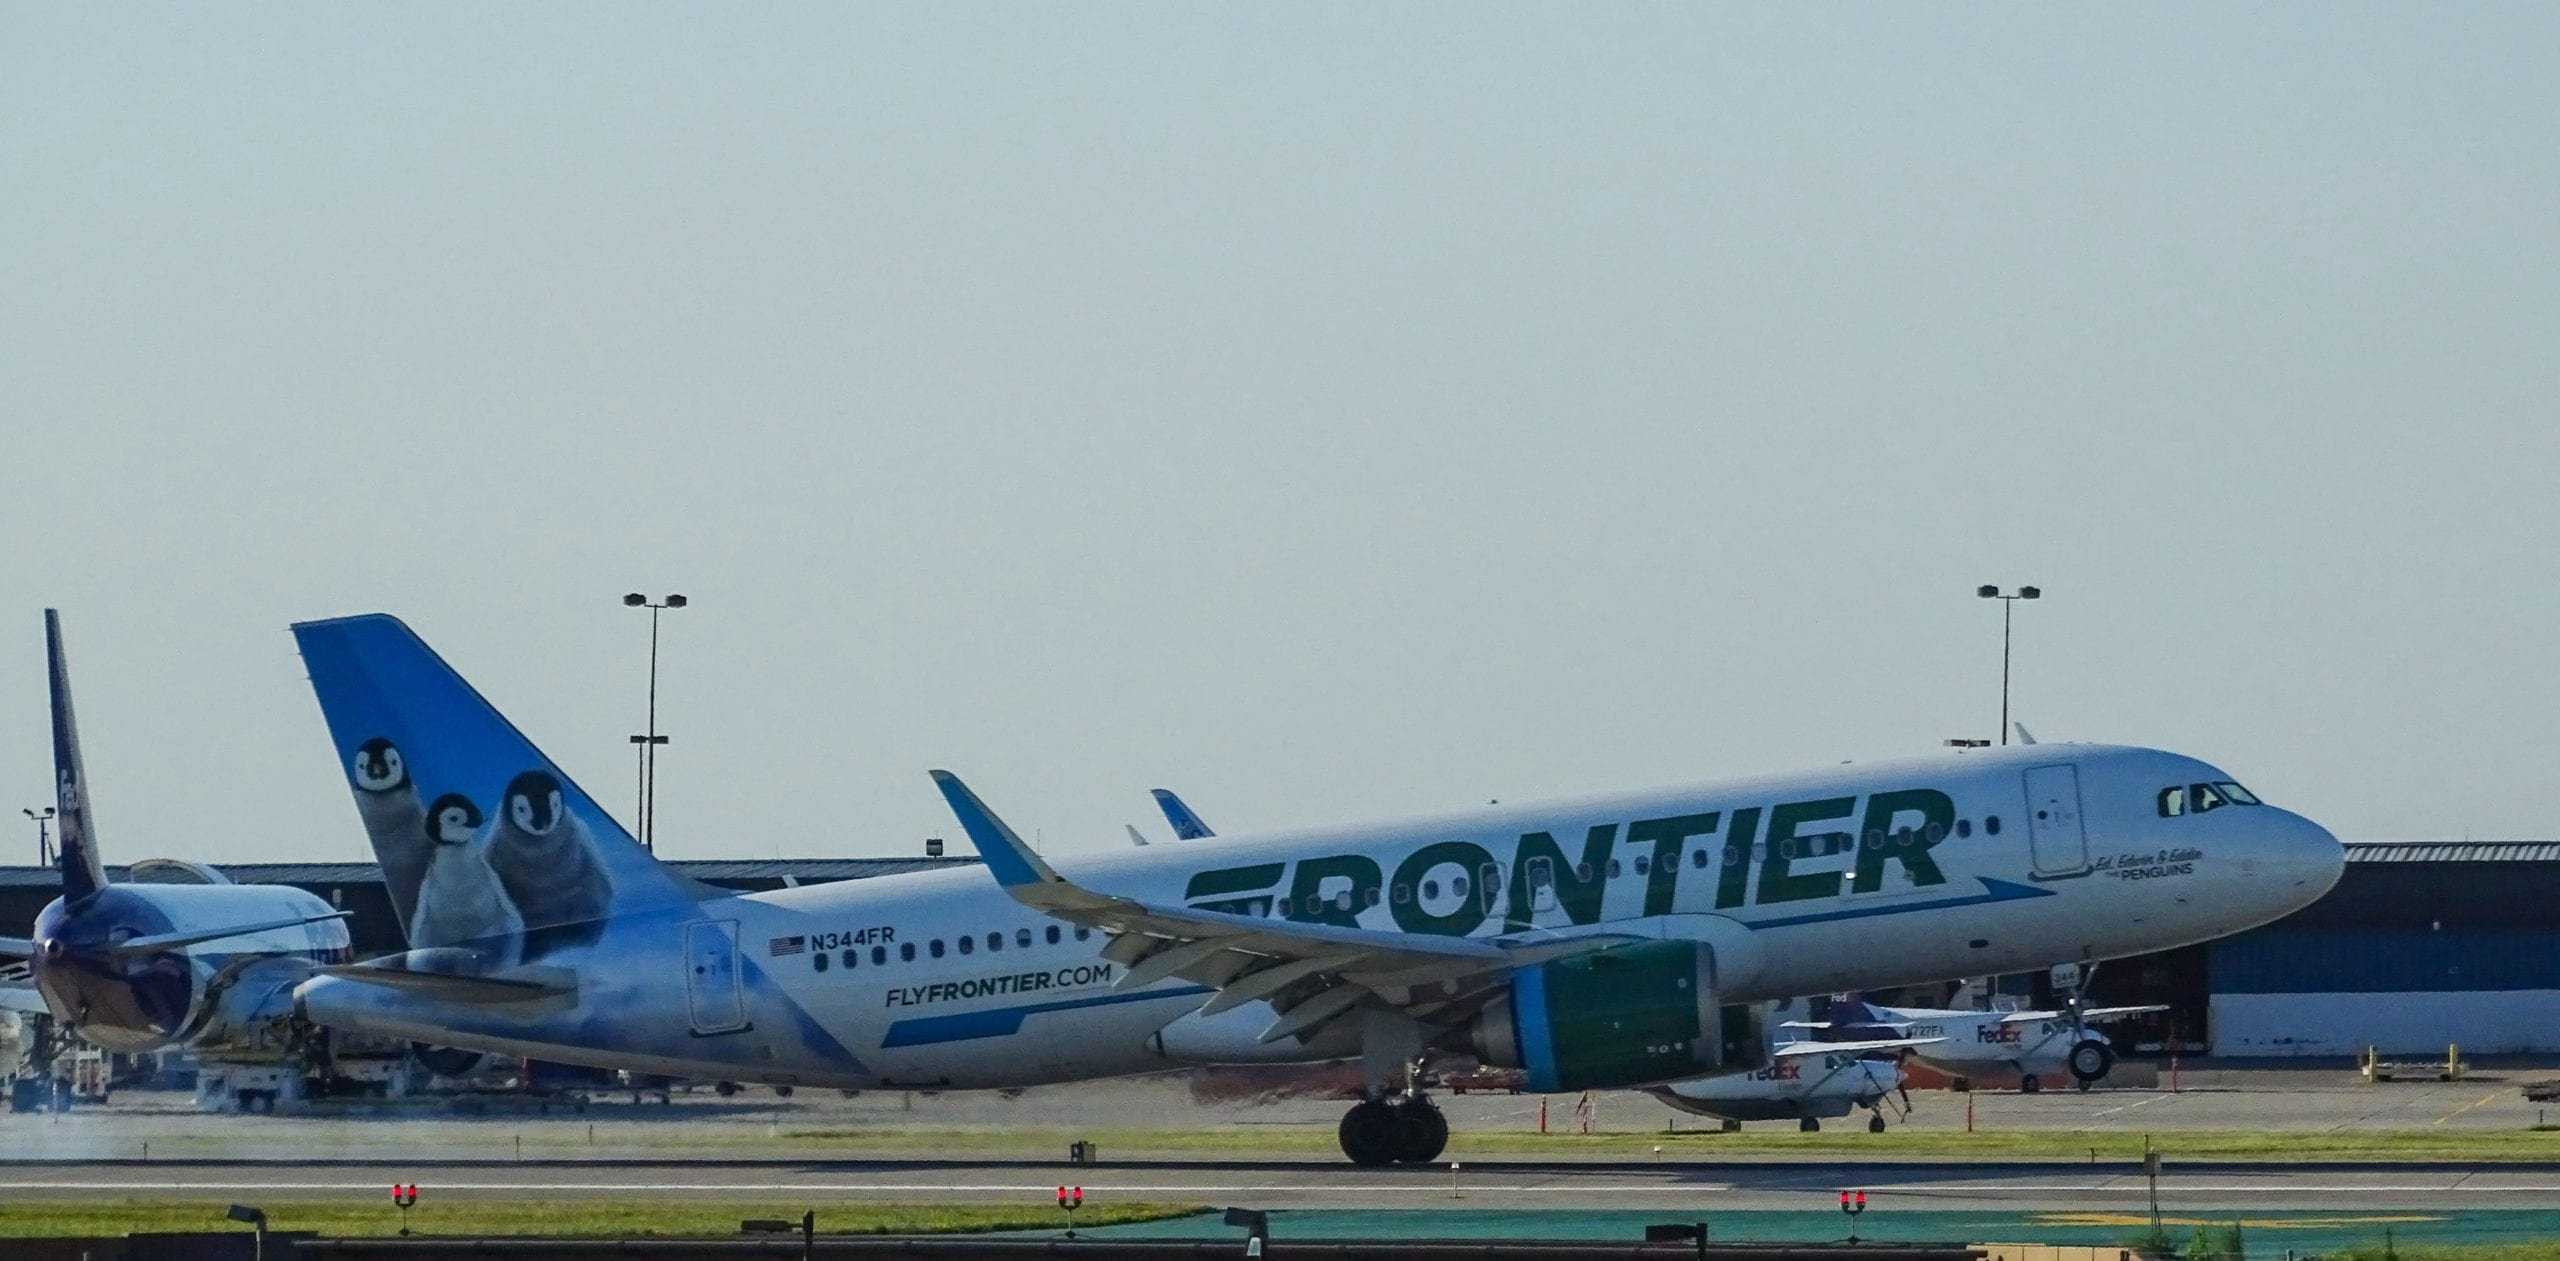 Frontier Mistakenly Sent A Mass Cancellation Email to Travelers